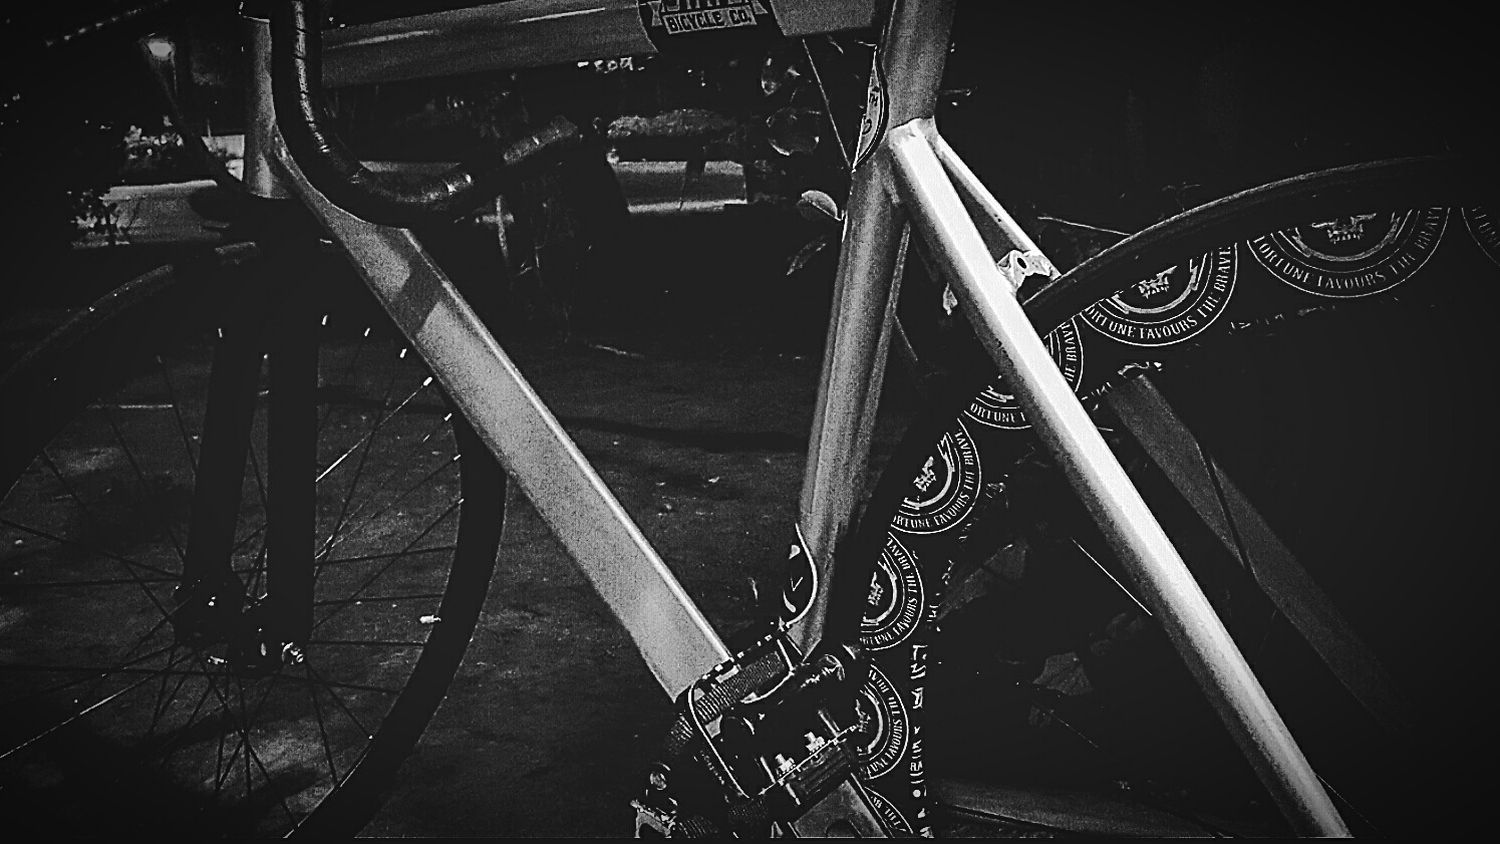 Trackbike Fixedgear Hello World Bikes SantaAna Downtown California Mobing Mash Orangecounty